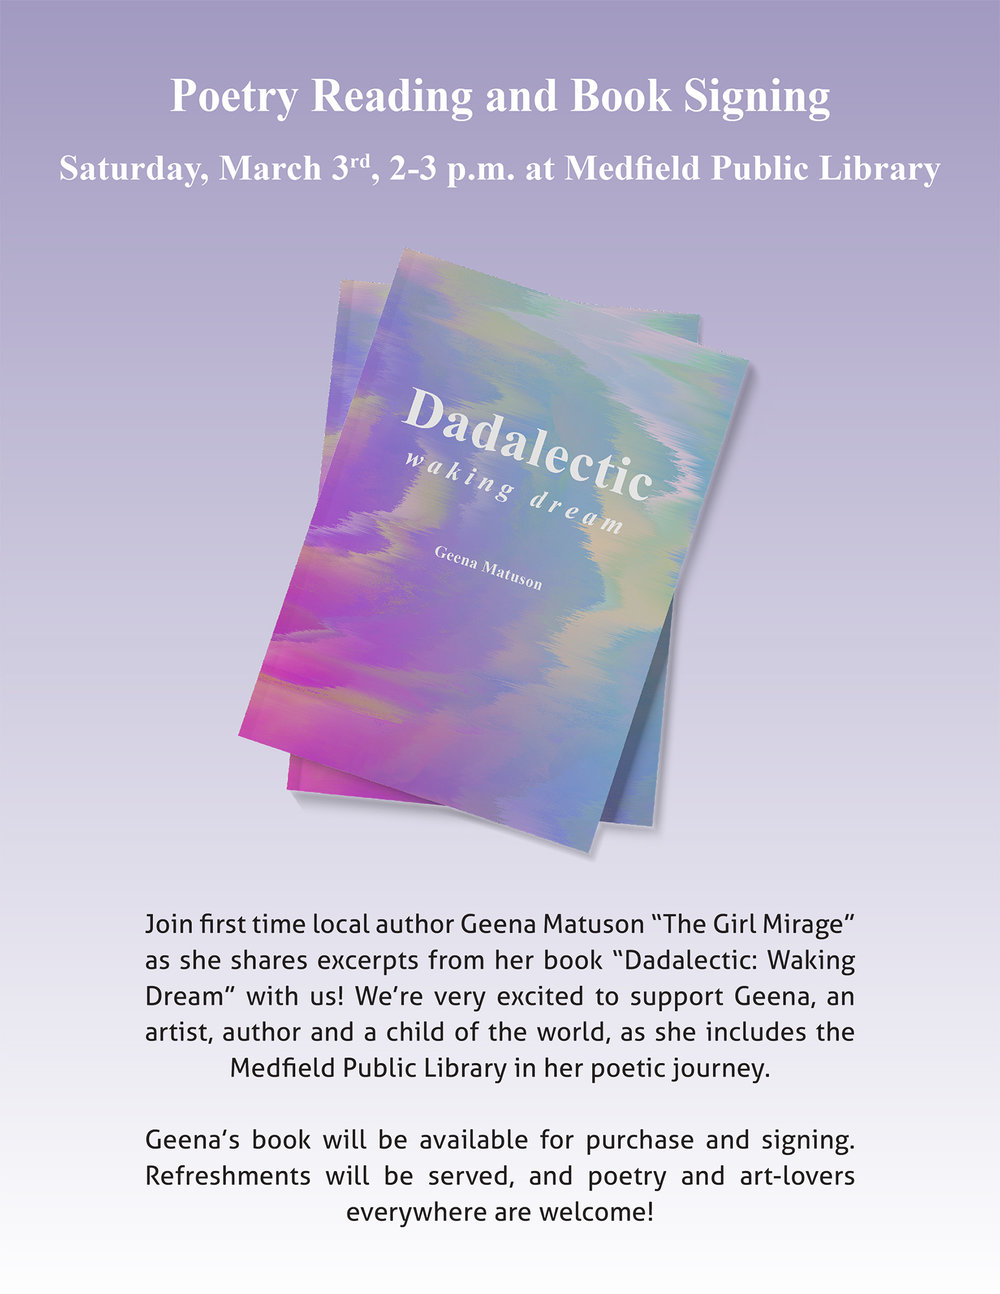 "Join Geena Matuson ""The Girl Mirage"" for her first book reading and signing for new book #Dadalectic! See more @ http://dadalectic.com."